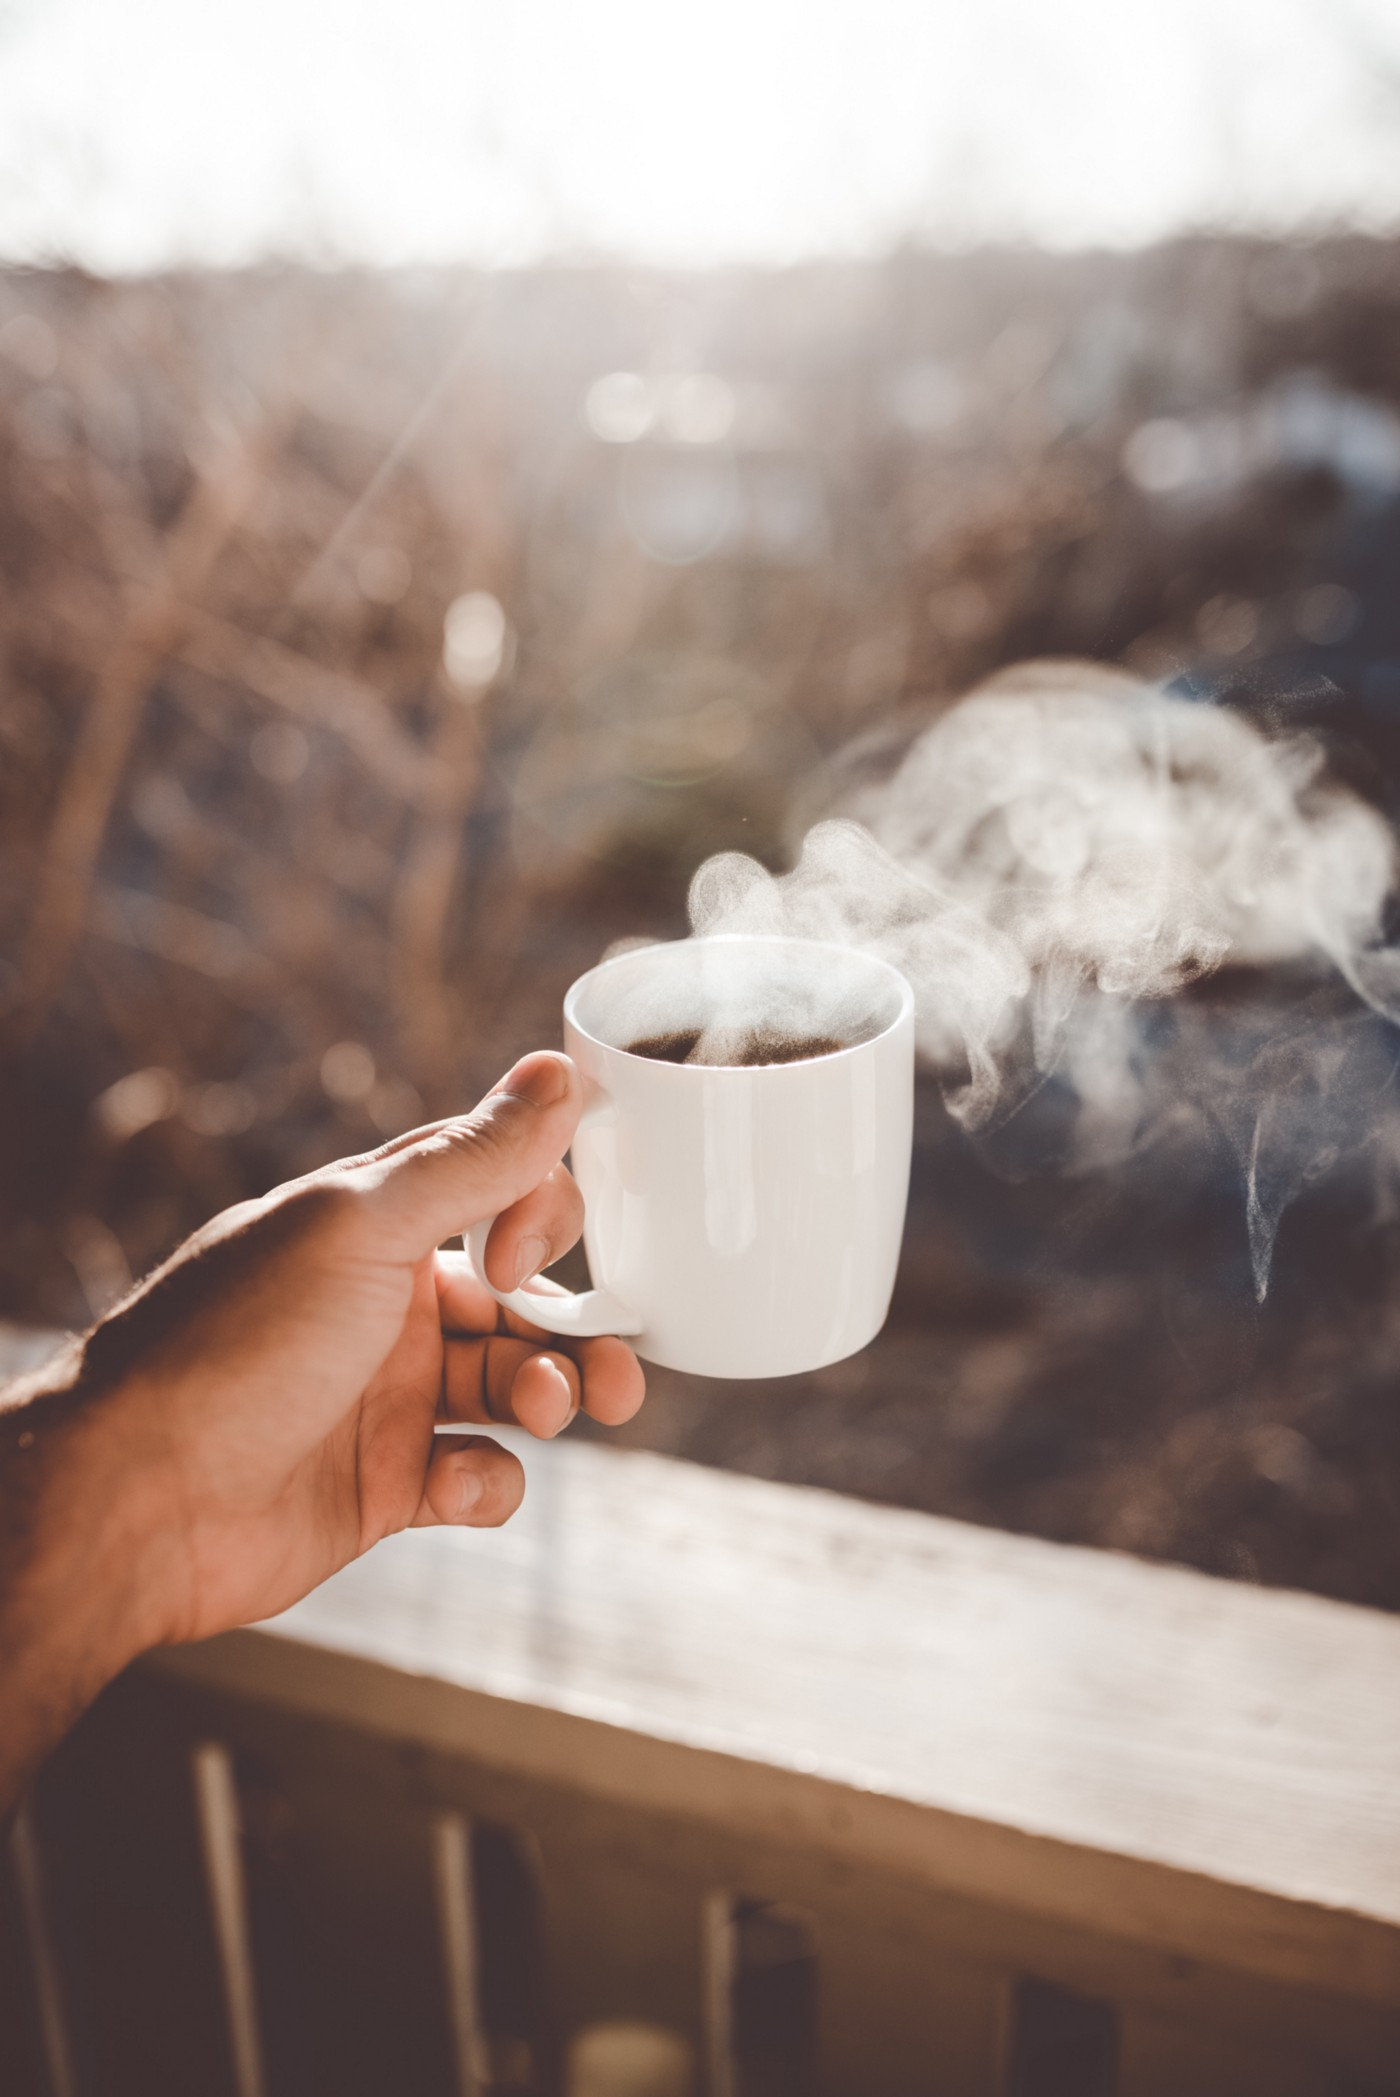 evaporating cup of coffee